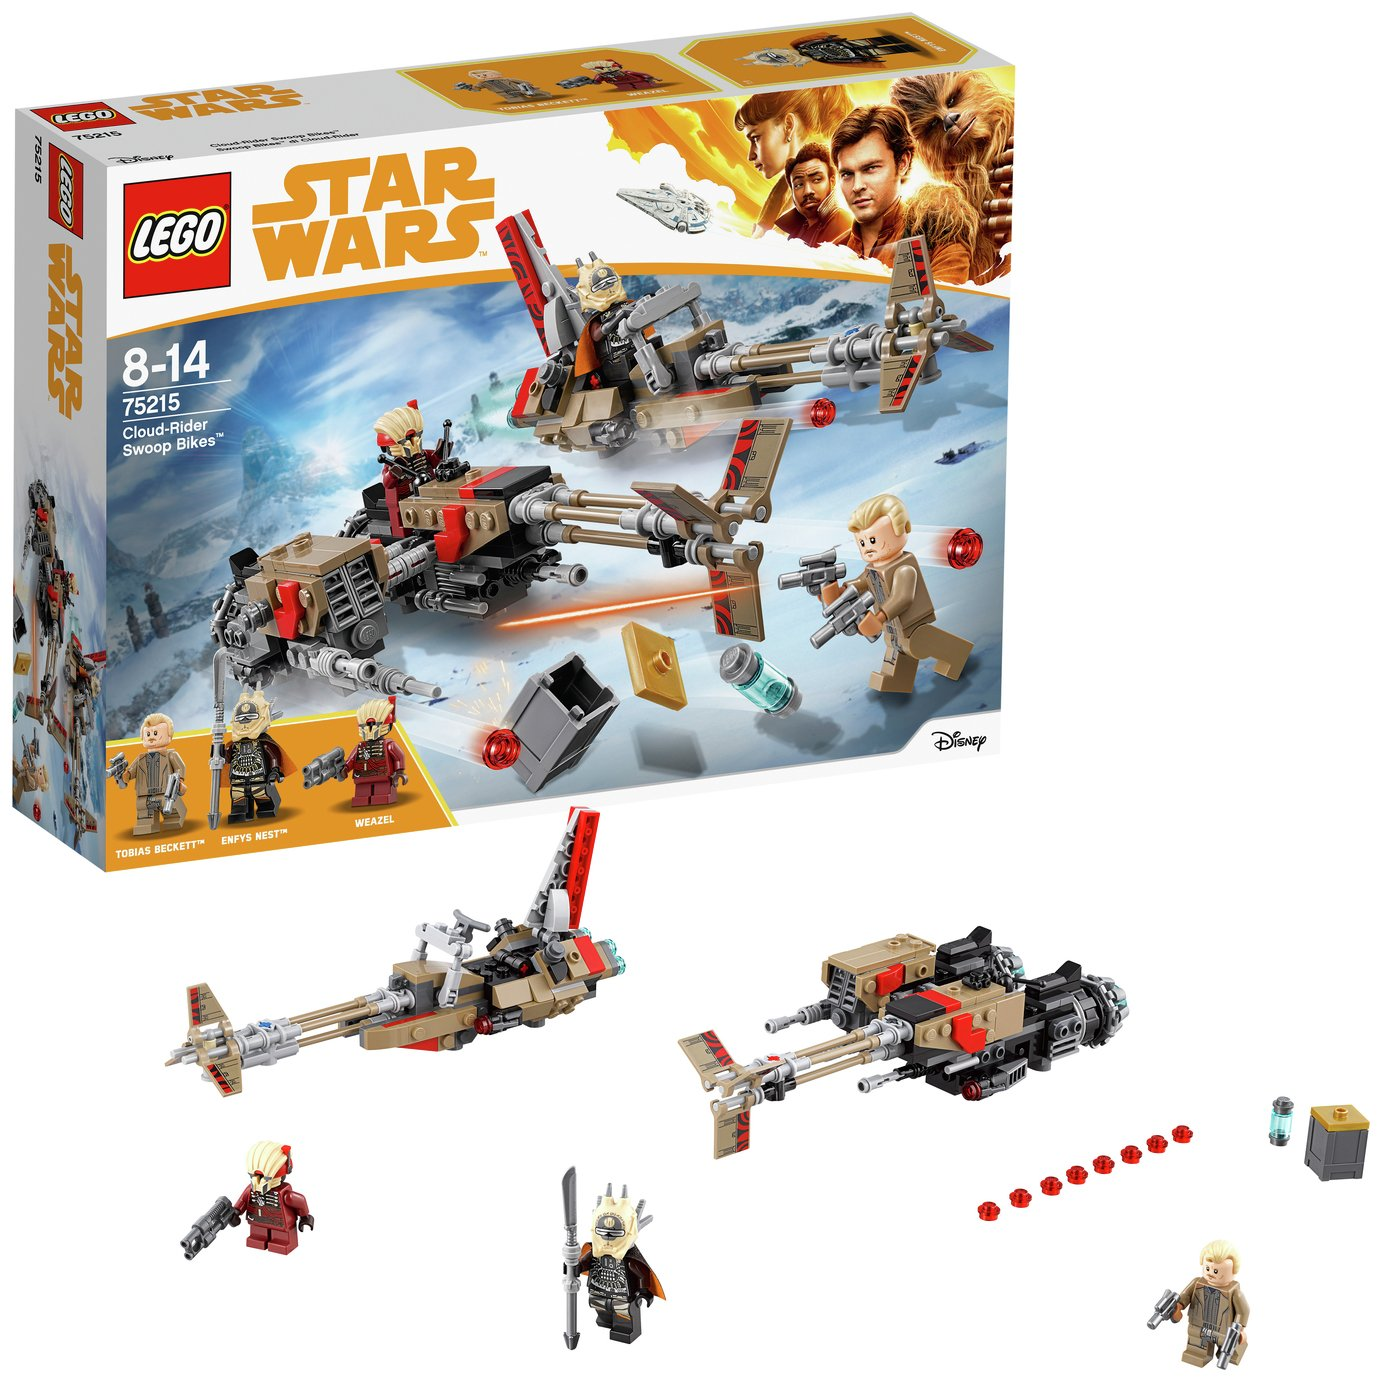 LEGO Star Wars Cloud Rider Swoop Bikes - 75215